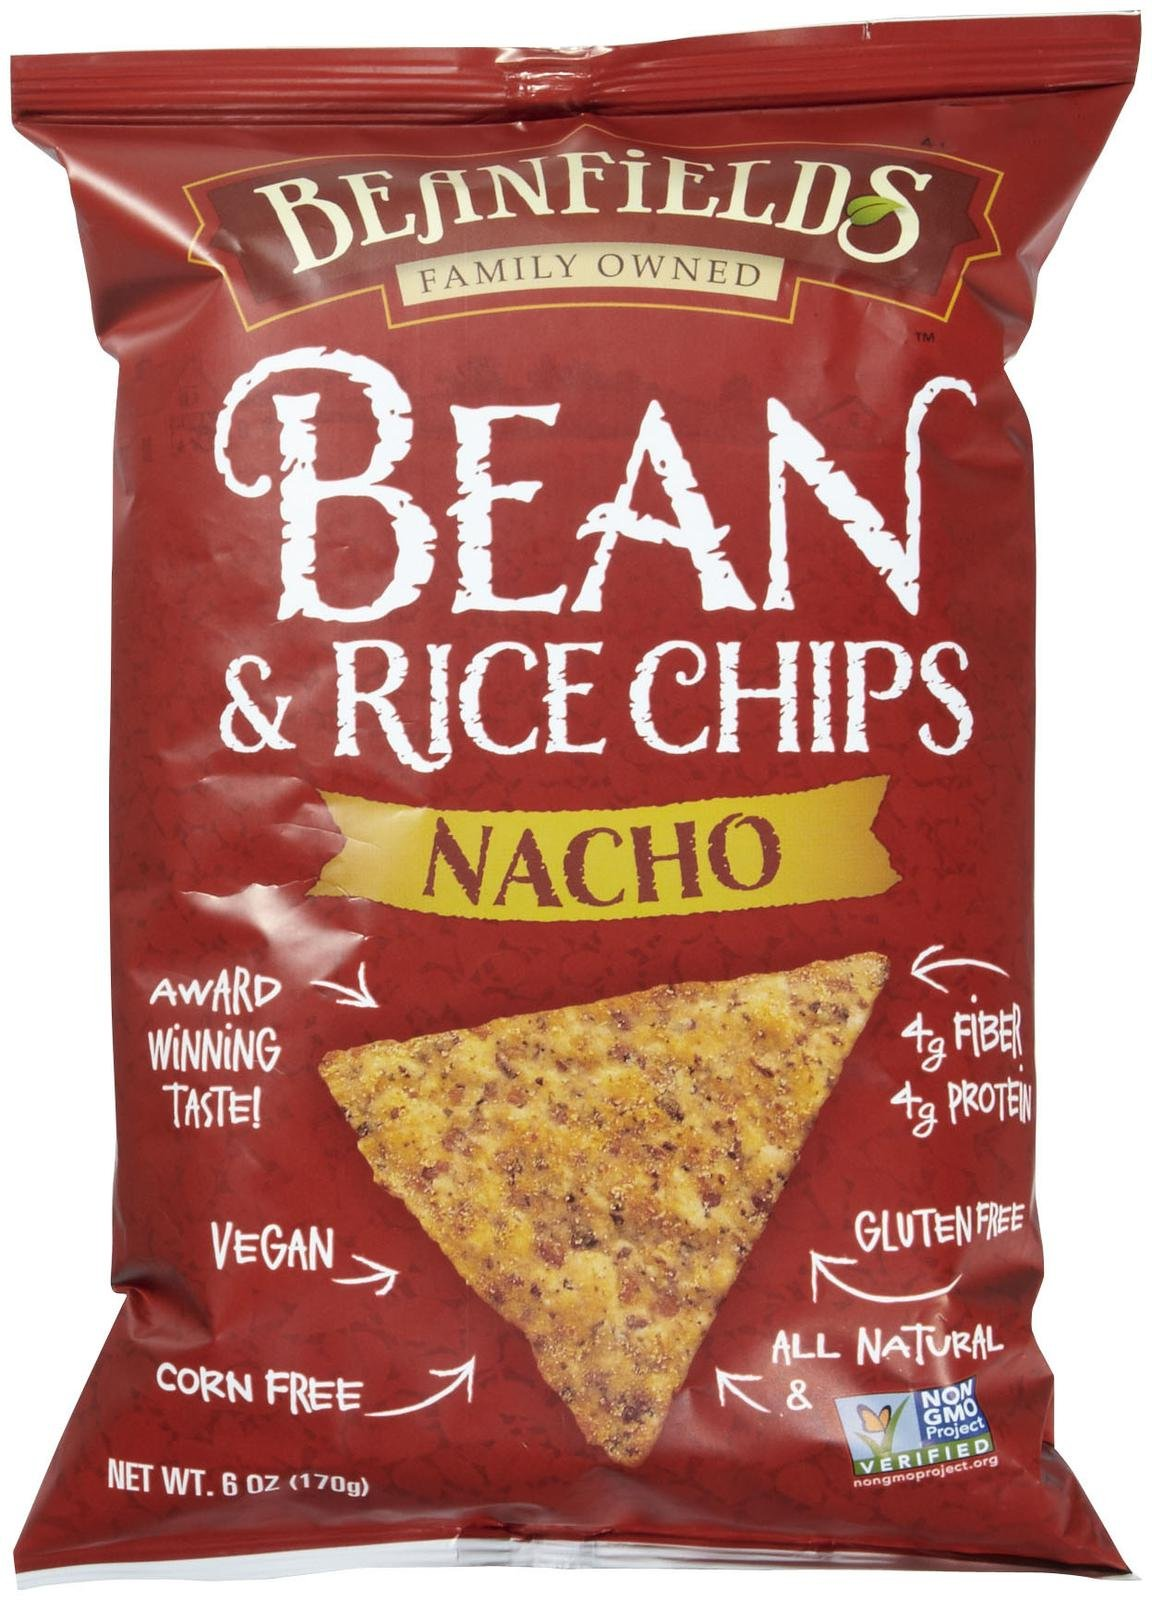 Beanfields Bean & Rice Chips Nacho - 6 oz - Vegan